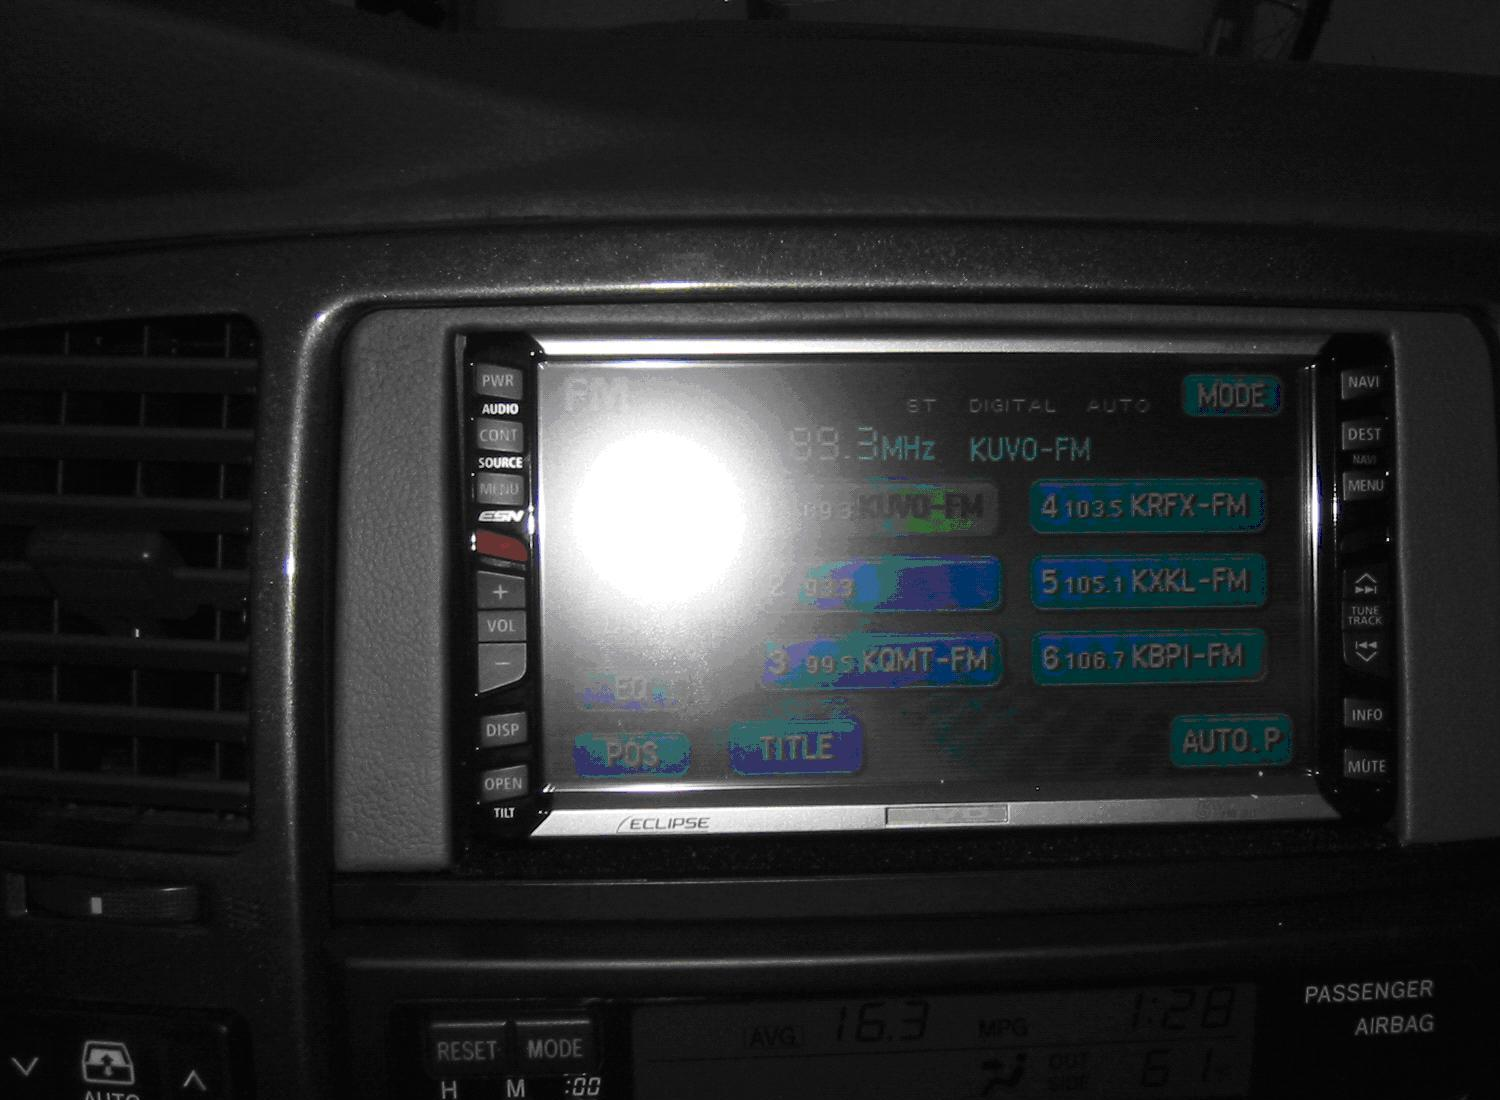 13718d1181665405 eclipse avn6610 way %3D eclipse eclipse avn6610 on the way =) toyota 4runner forum largest eclipse avn5500 wiring diagram at creativeand.co